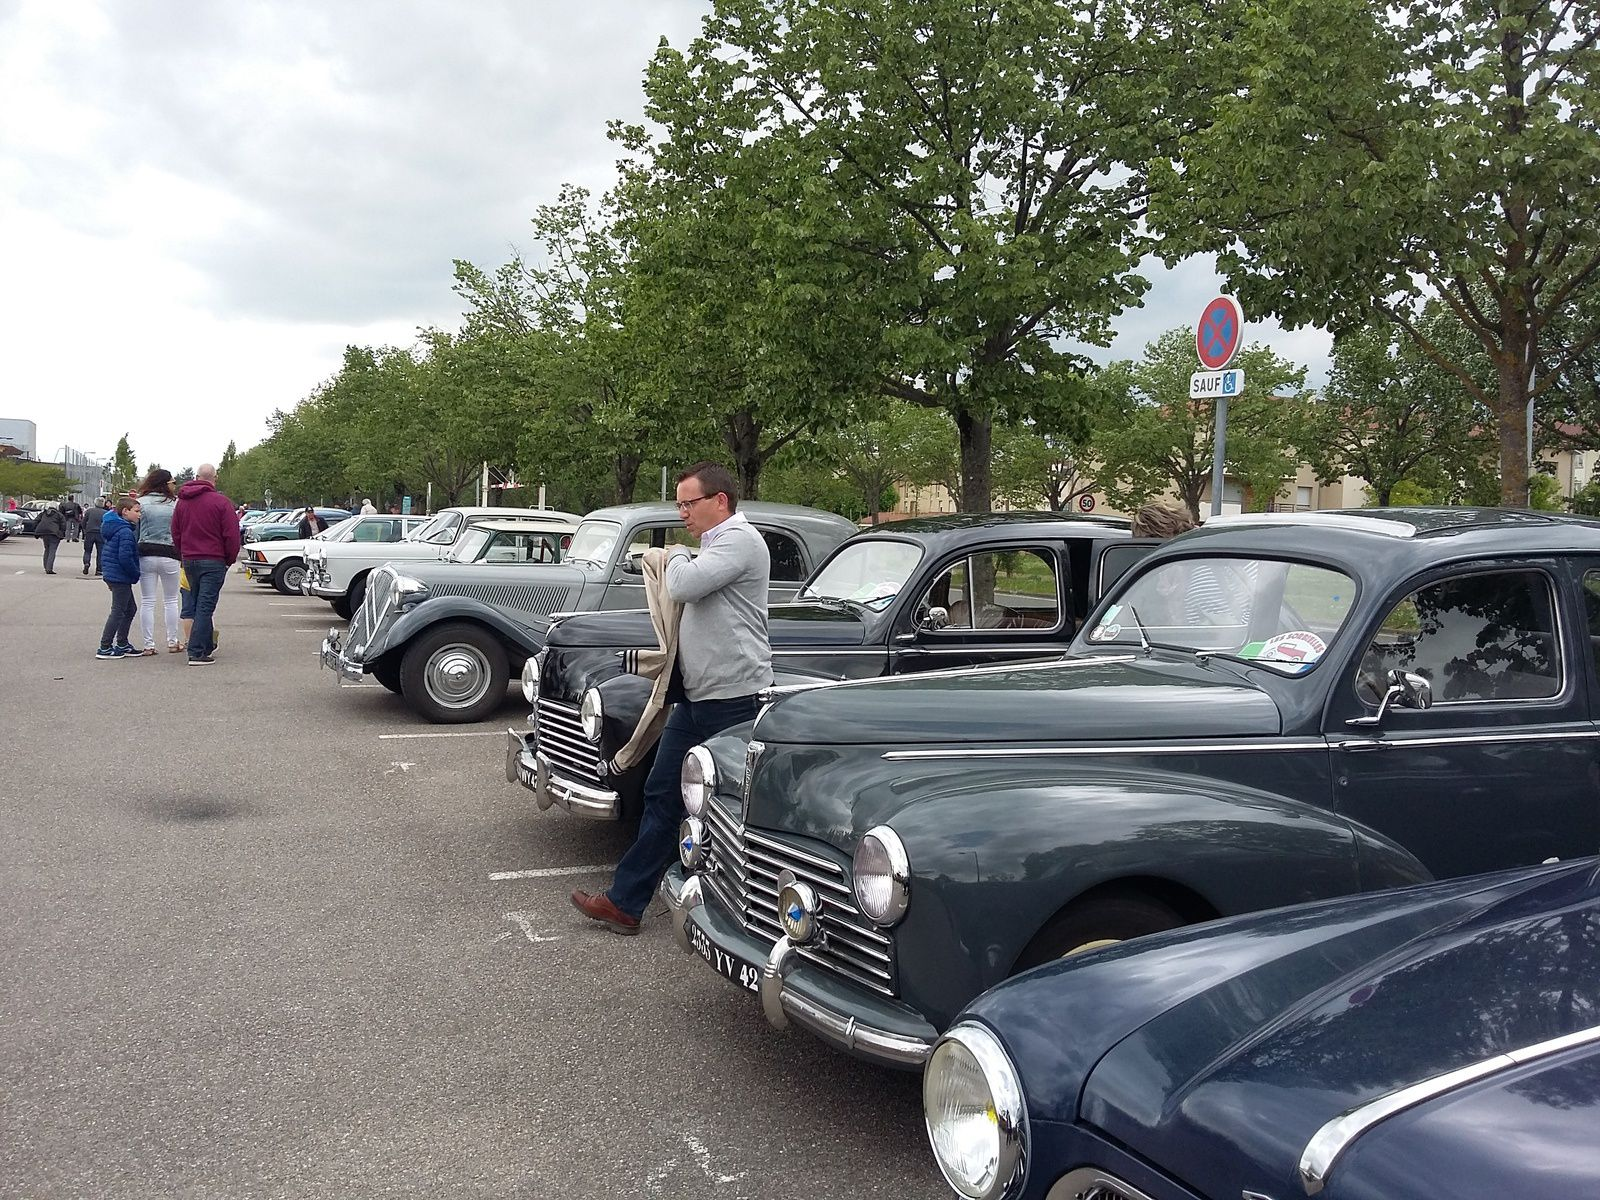 JOURNEE NATIONALE des VEHICULES d'EPOQUE 28 avril MONTBRISON